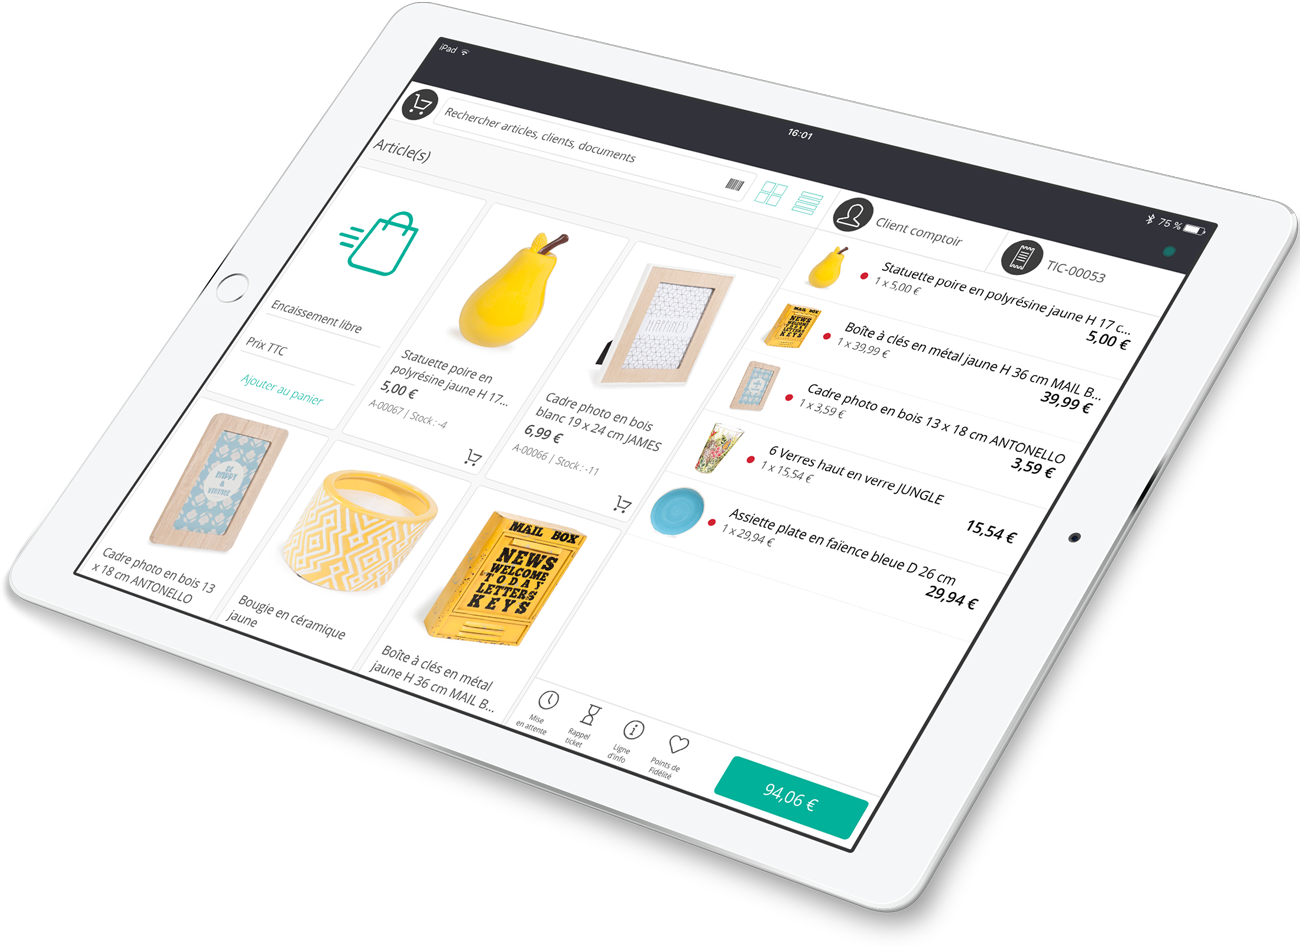 The till app that allows you to sell products on a tablet.